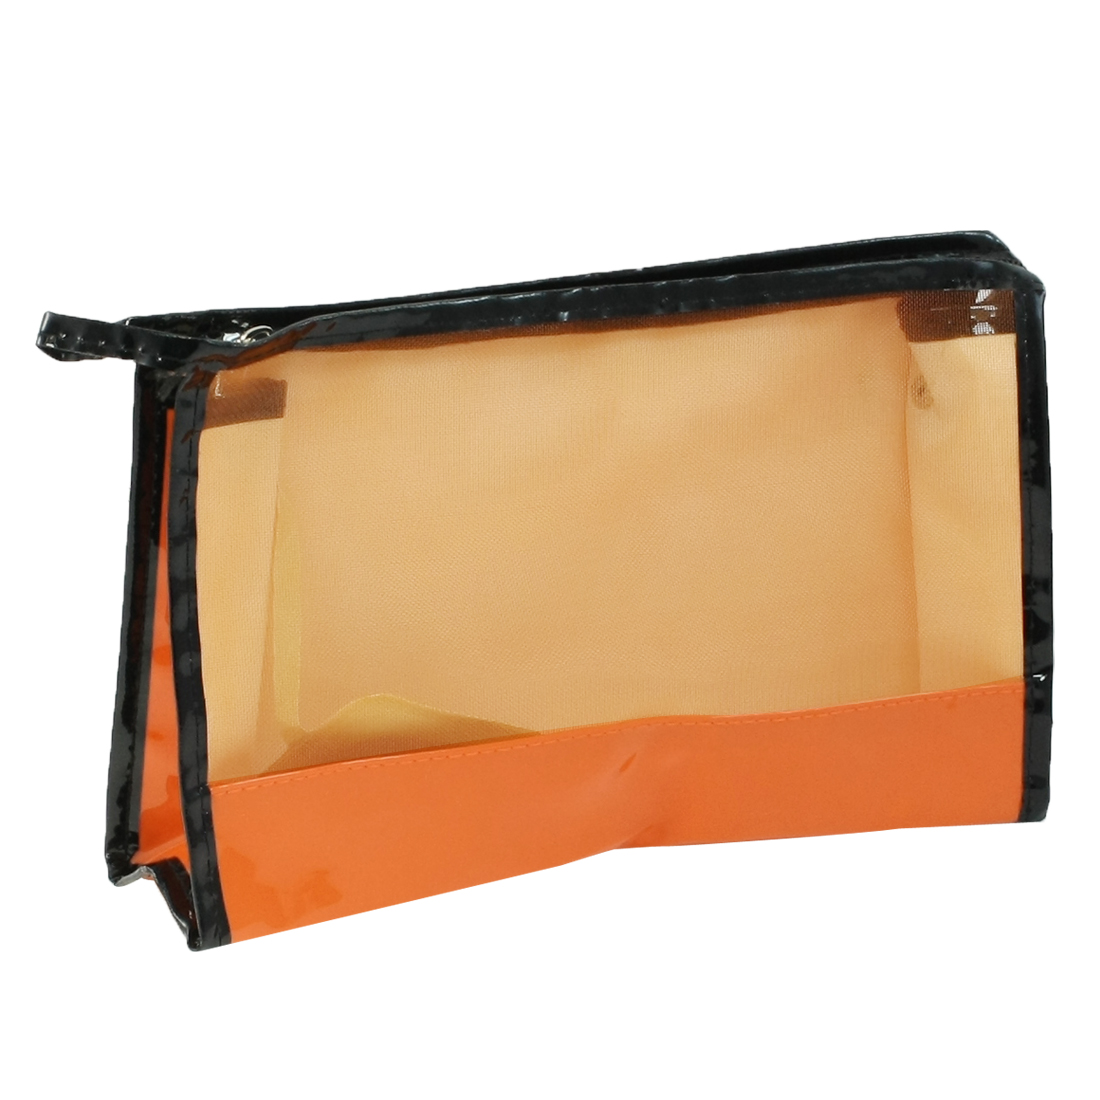 PU Plastic Zipper Closure Makeup Cosmetic Bag Orange Black for Ladies Girls